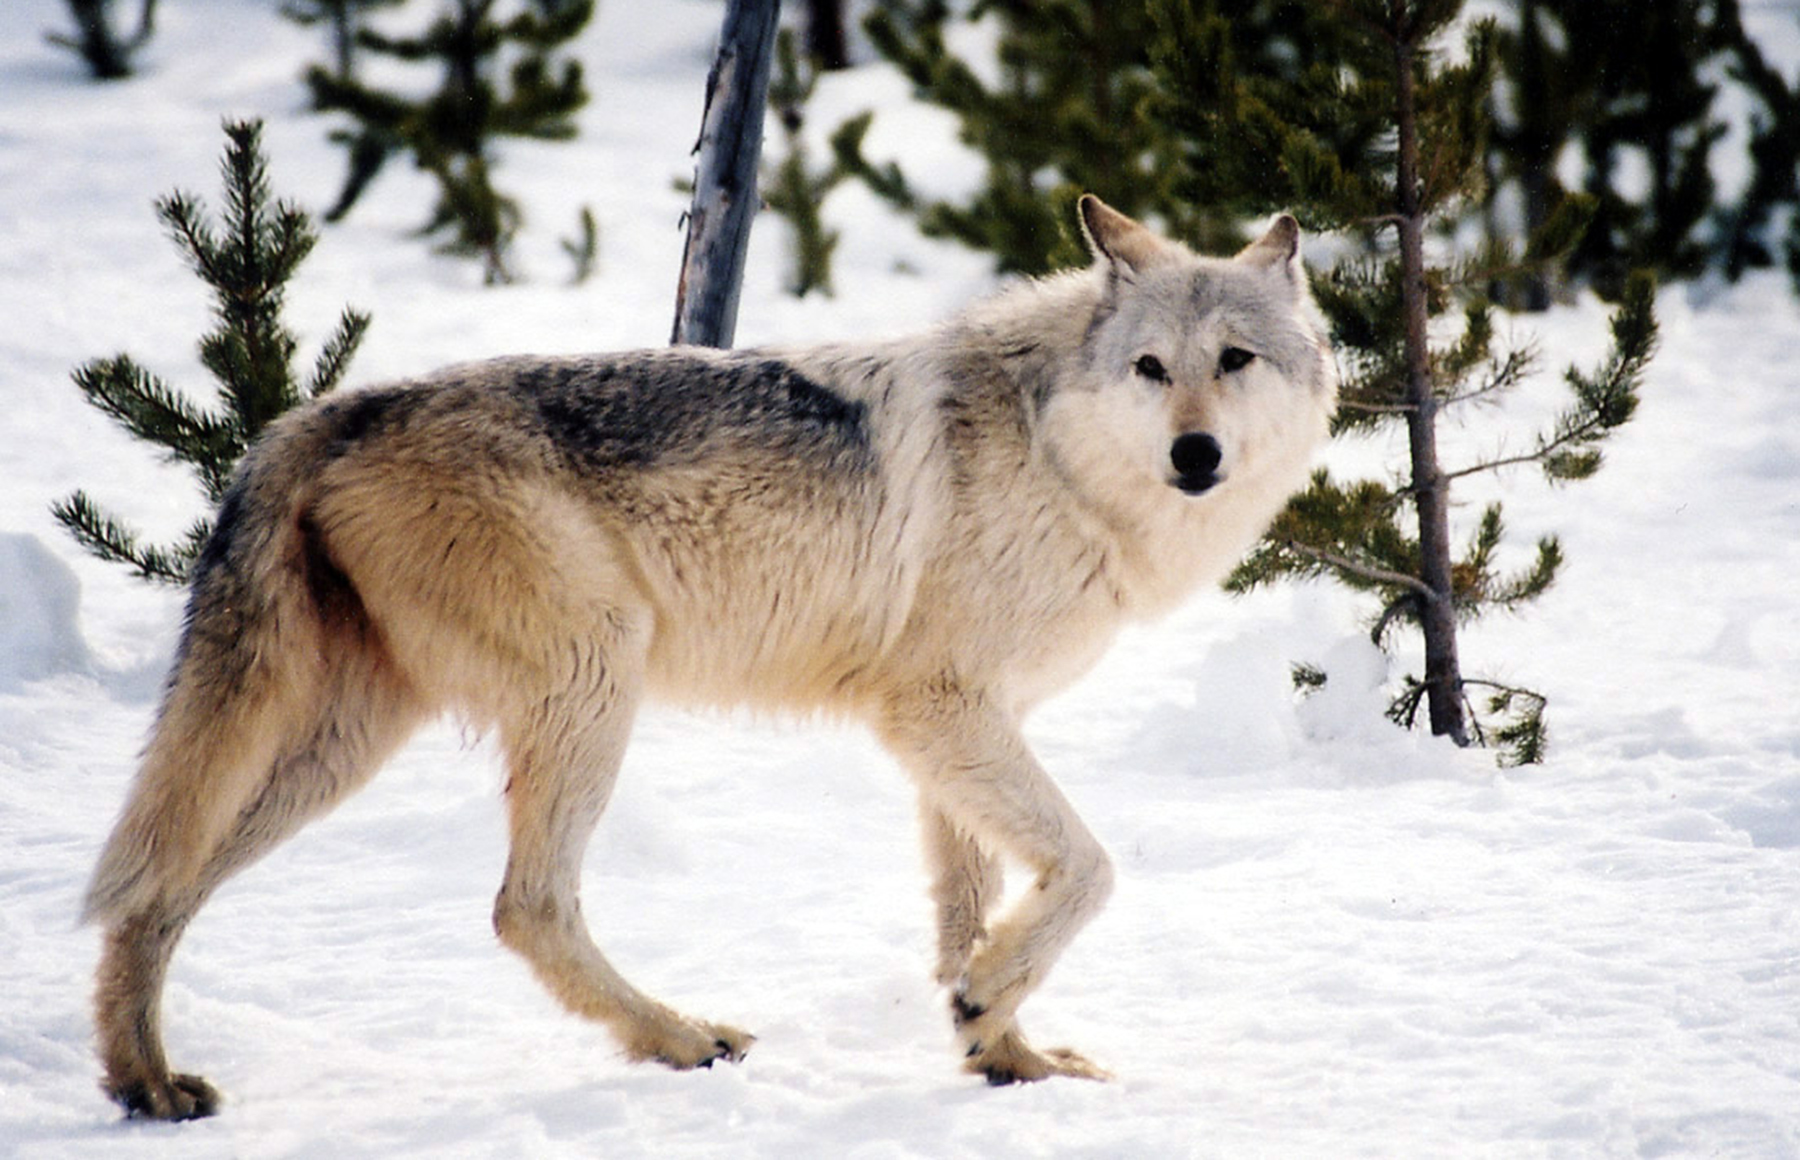 Silenced howls: The reemergence of the war on wolves